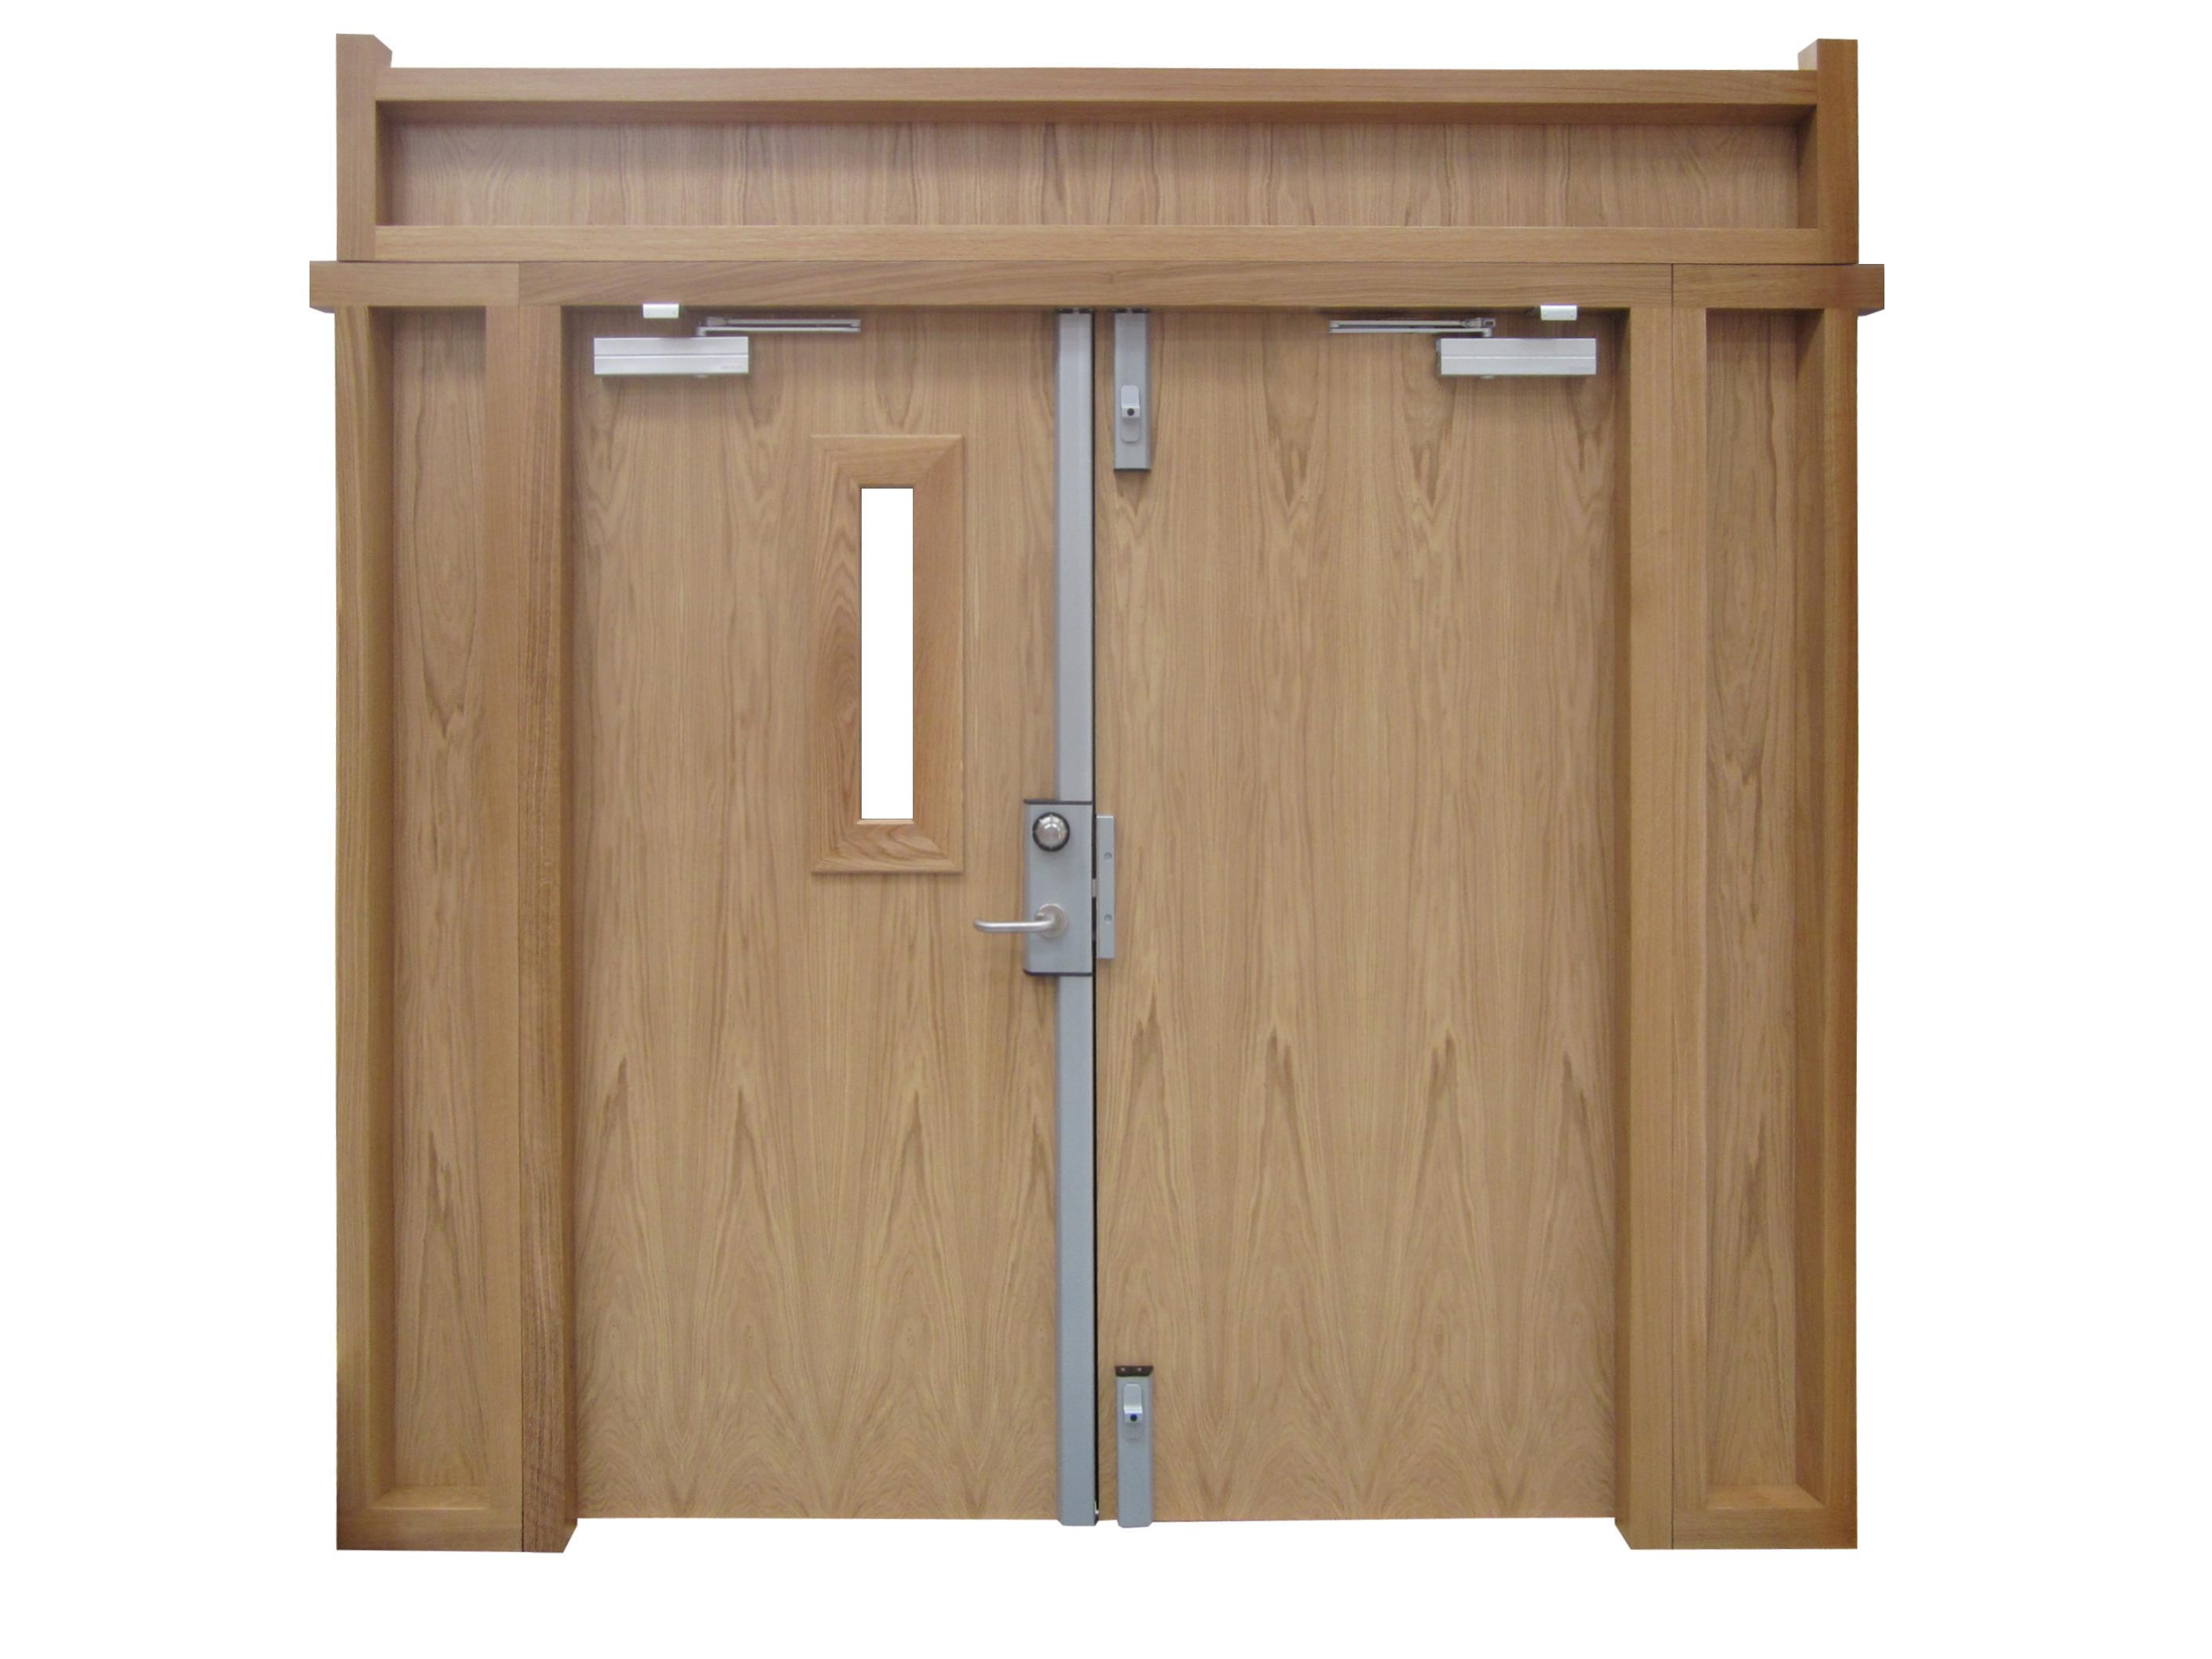 Safeguard Timber Doorsets